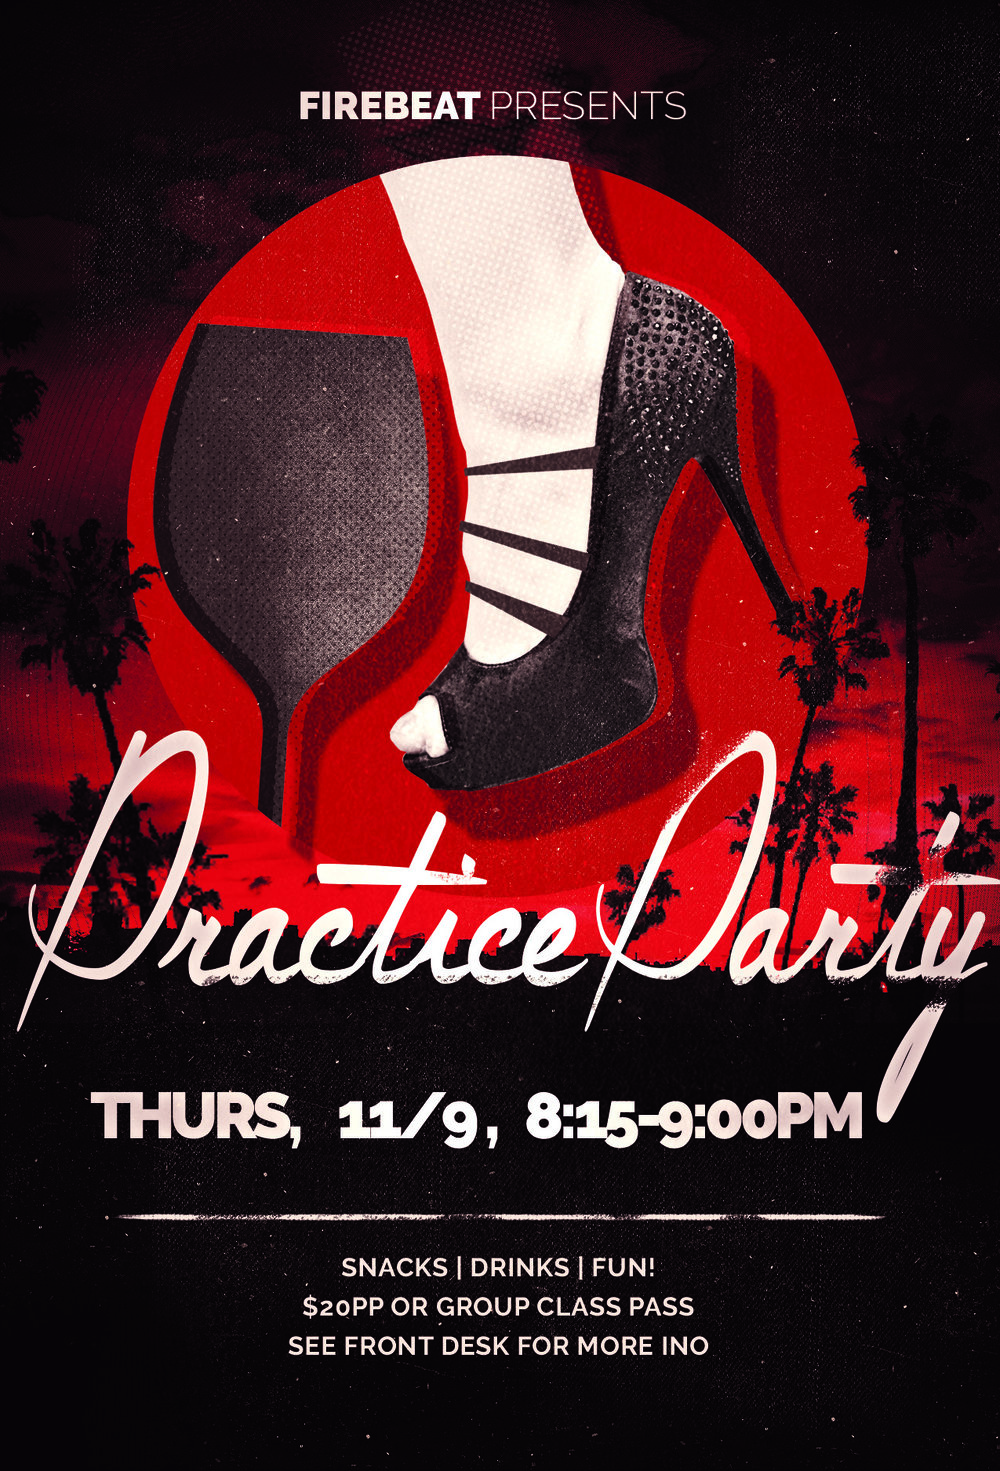 - Looking to take your dancing out of the classroom and onto the dance floor? You're in luck! Our next practice party is coming up on January 11th, and it's the perfect way to build your confidence in a social setting. From 8:15-9:00 PM, join dancers of all levels for a fun, informal dance party with great music, light refreshments, and plenty of fabulous dancing. Meet new friends, dance with new partners, and experience the fun of the Firebeat community! Tickets are just $20 per person, or use one class from your pack. We can't wait to dance with you!